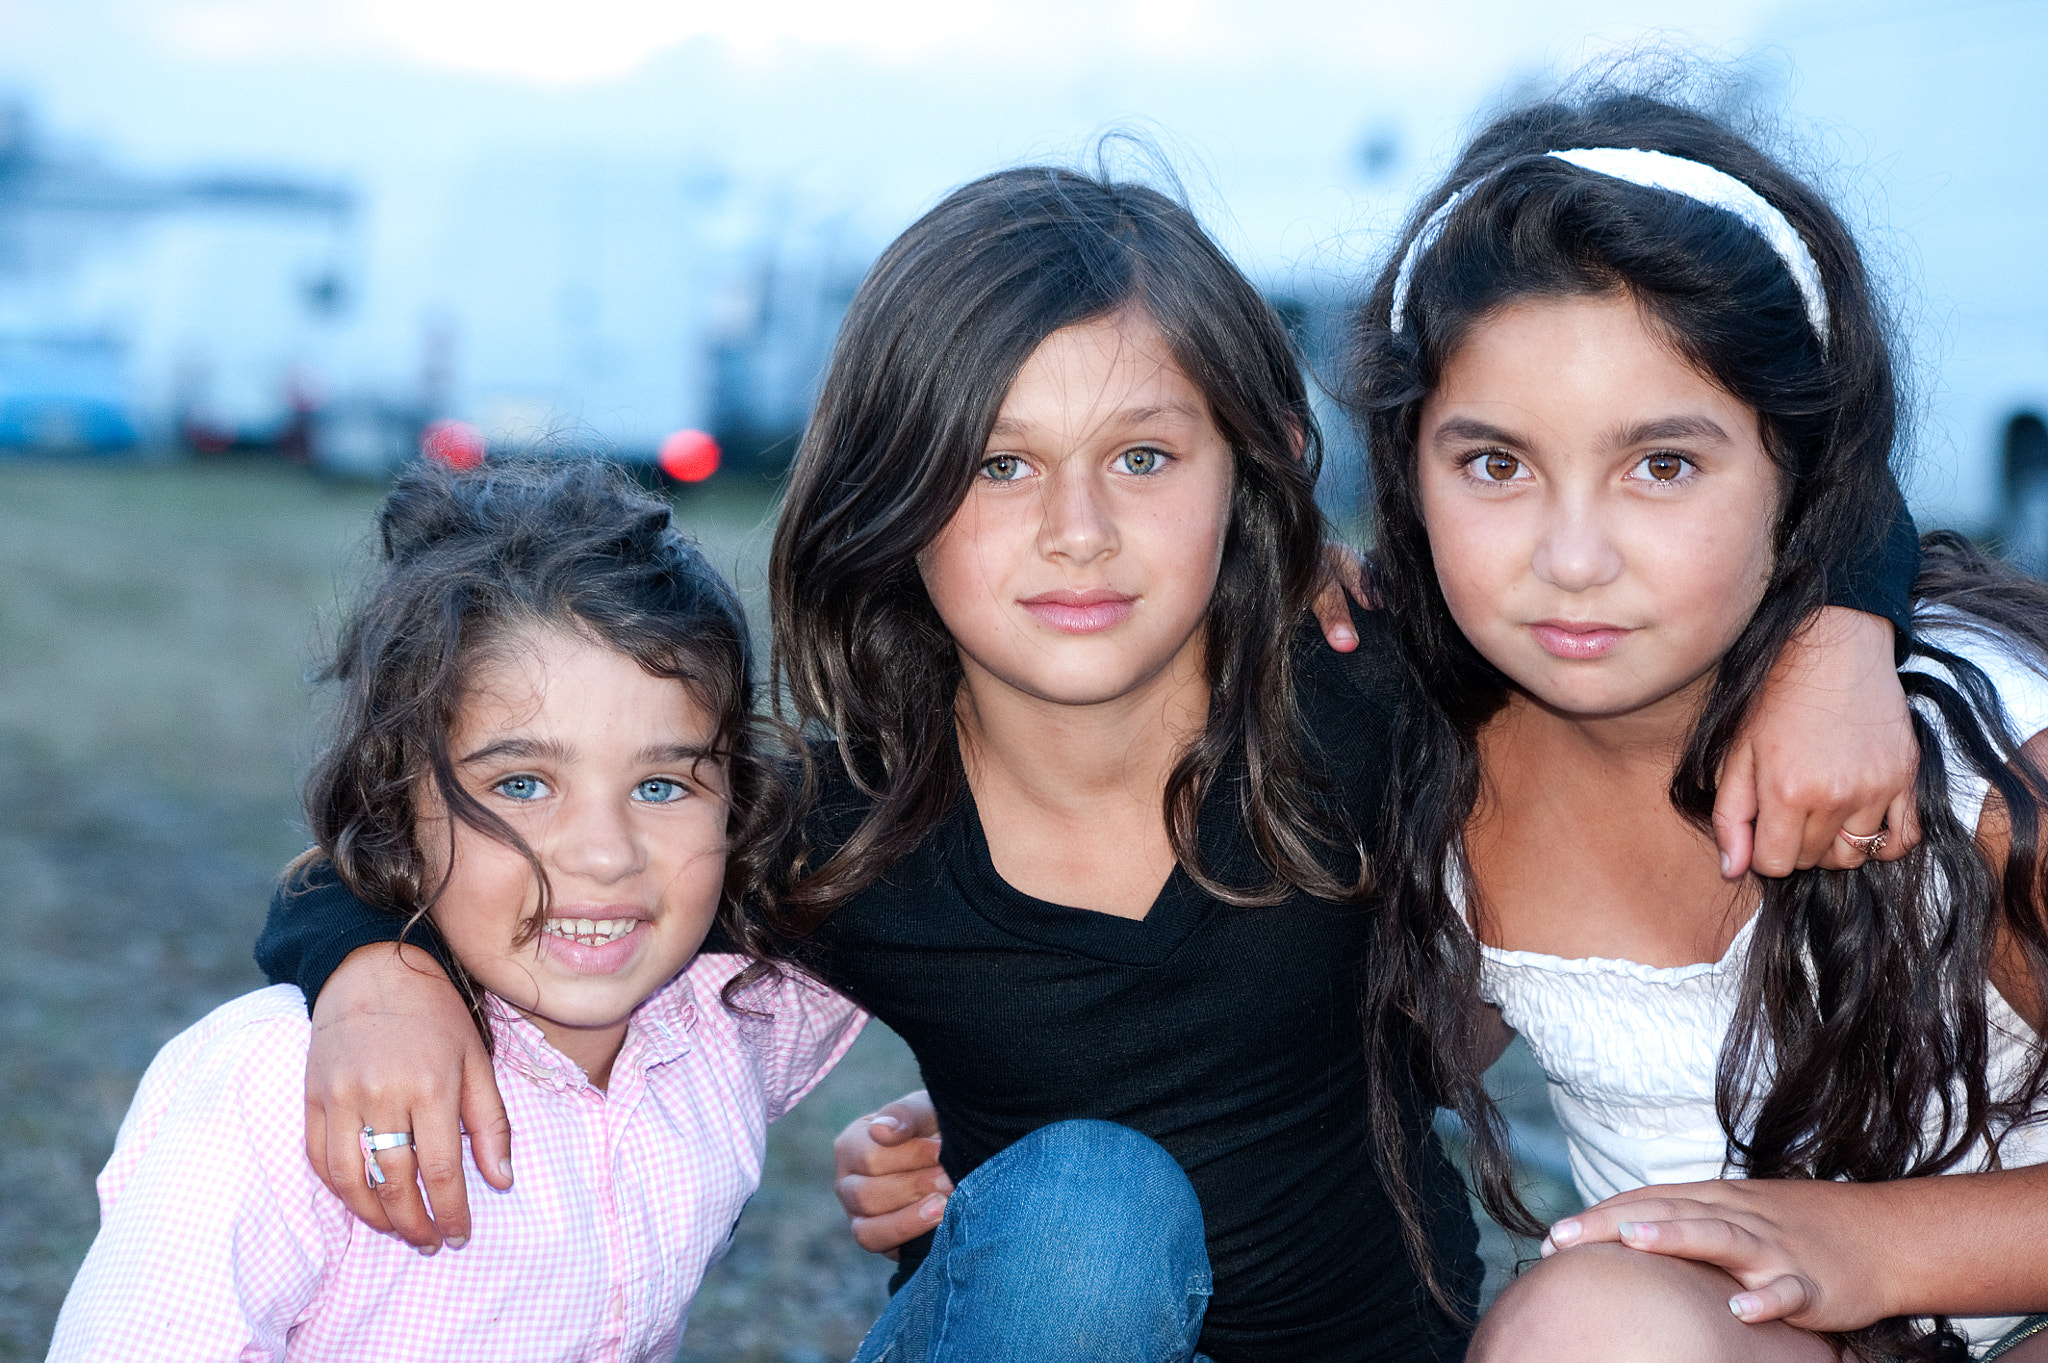 Photograph Young gipsy girls by Aline Nédélec on 500px